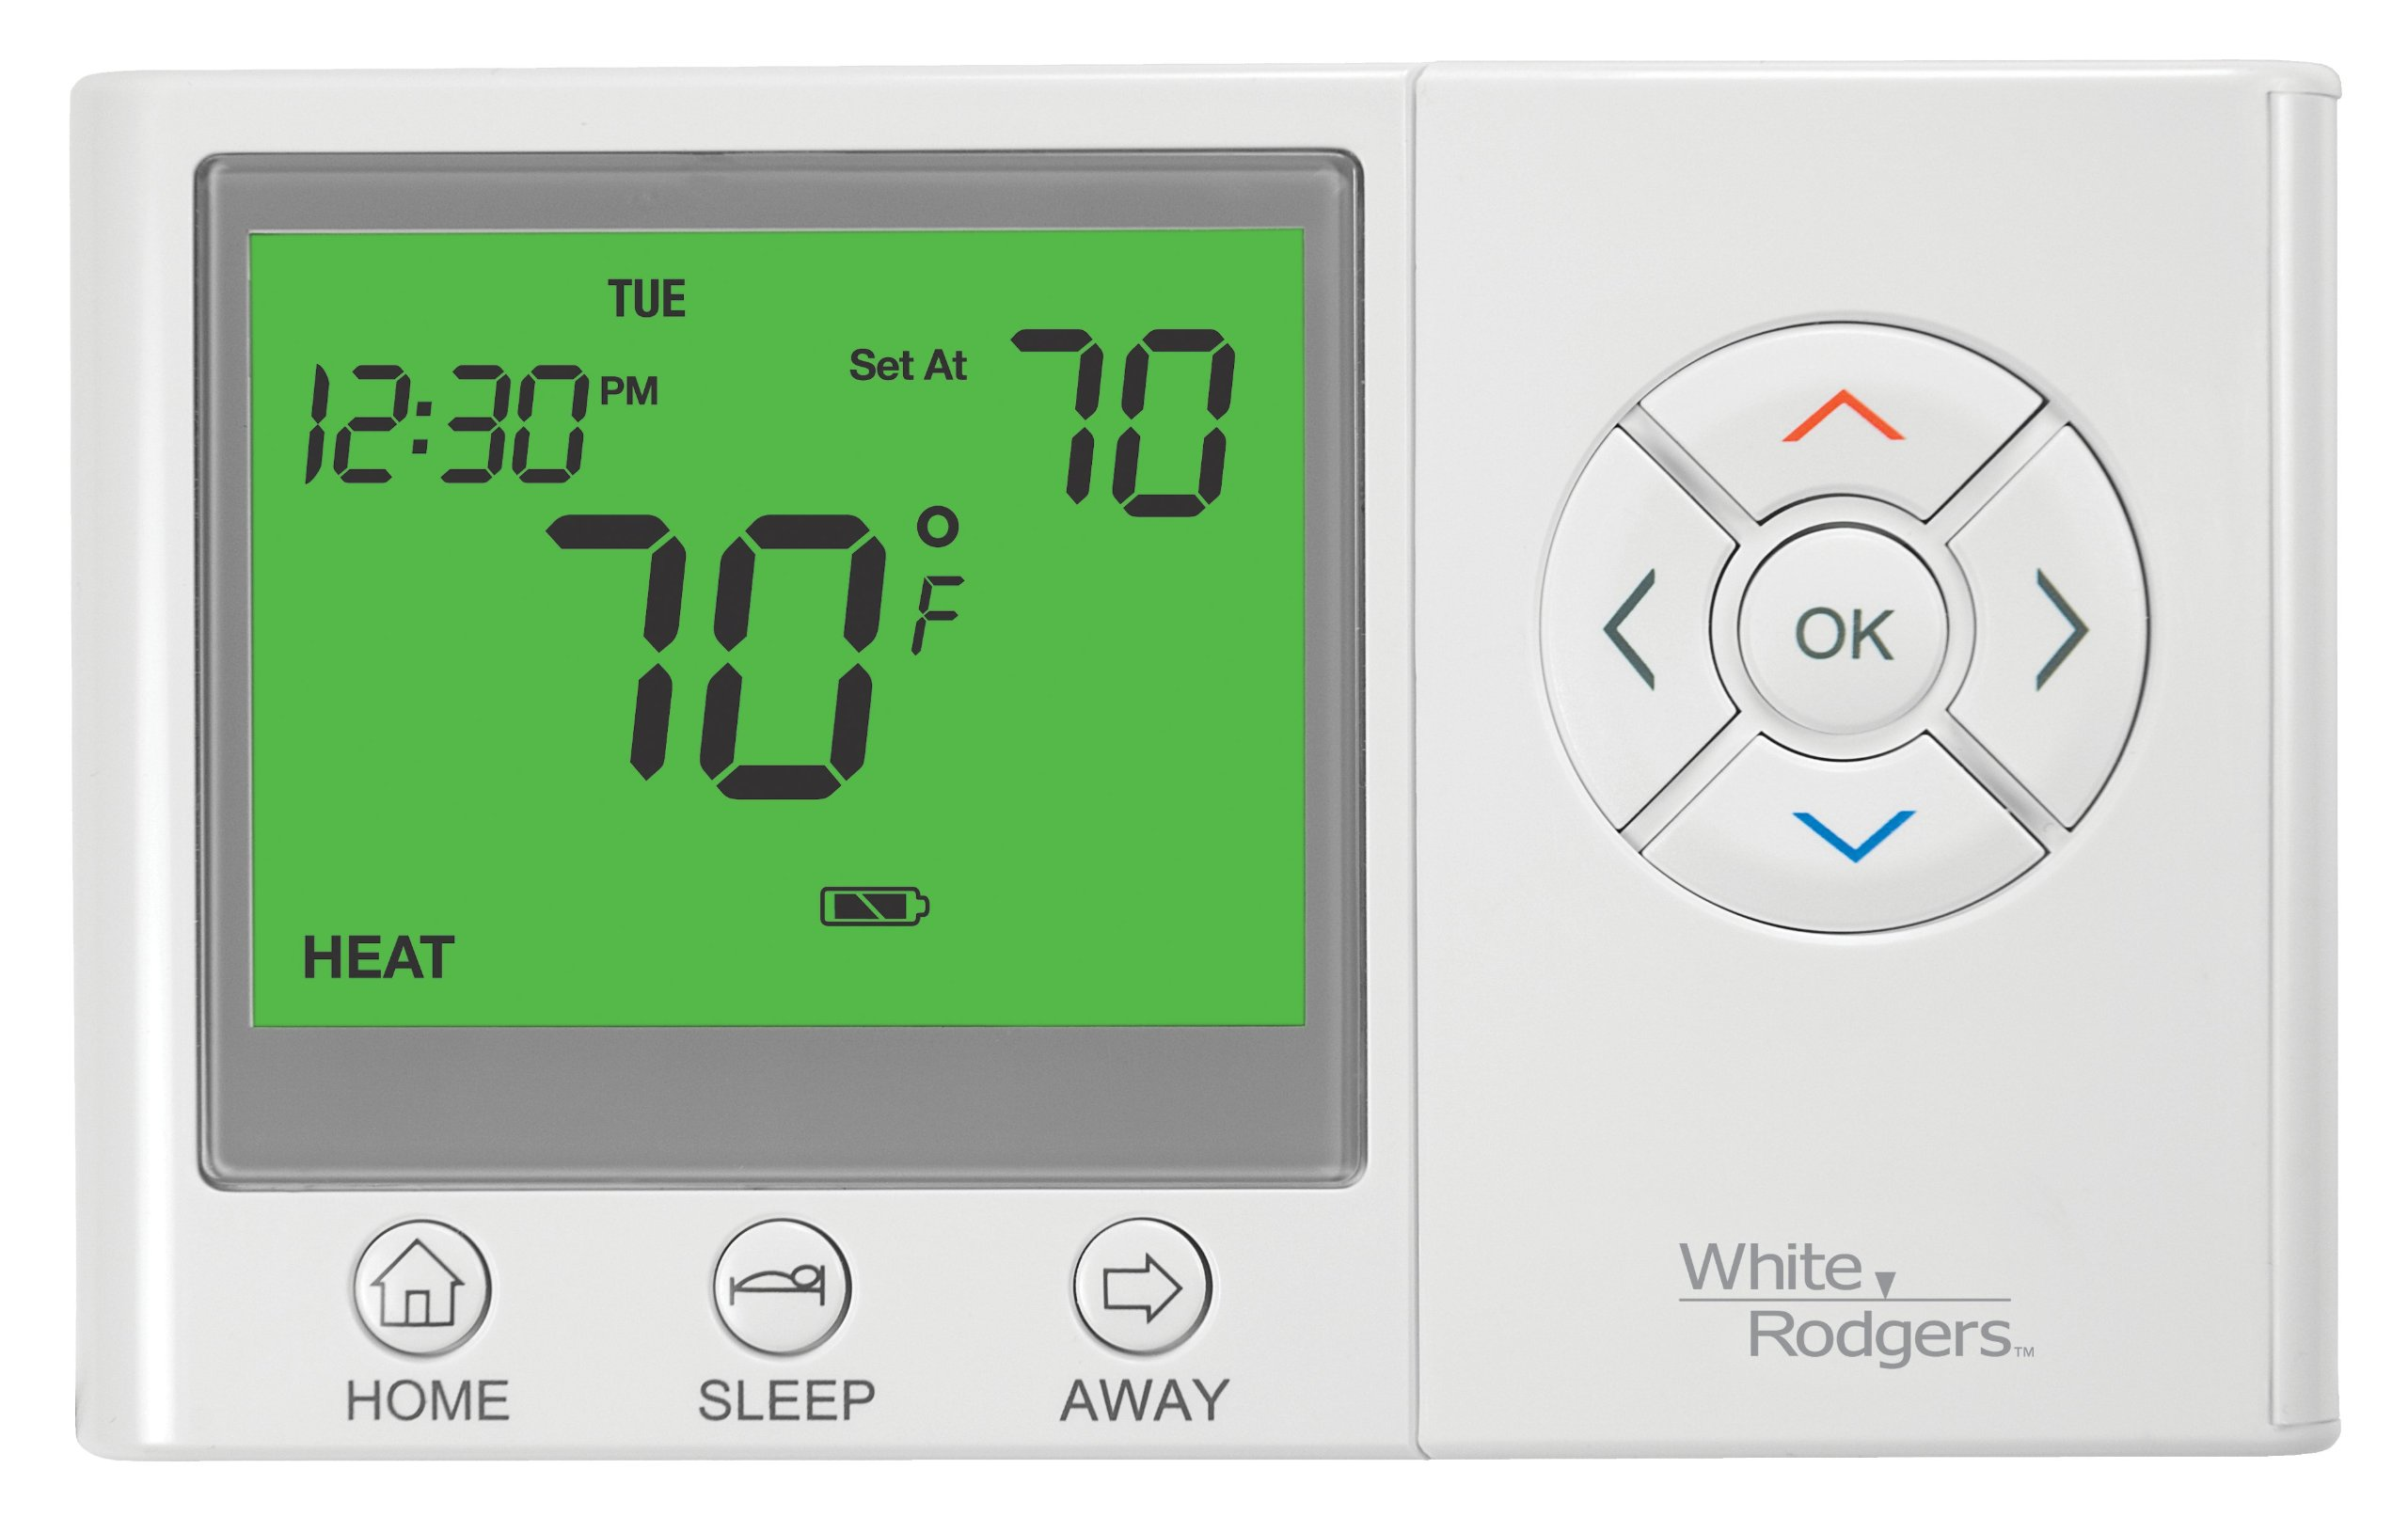 Emerson UP300 7-Day Programmable Thermostat With Home/Sleep/Away Presets